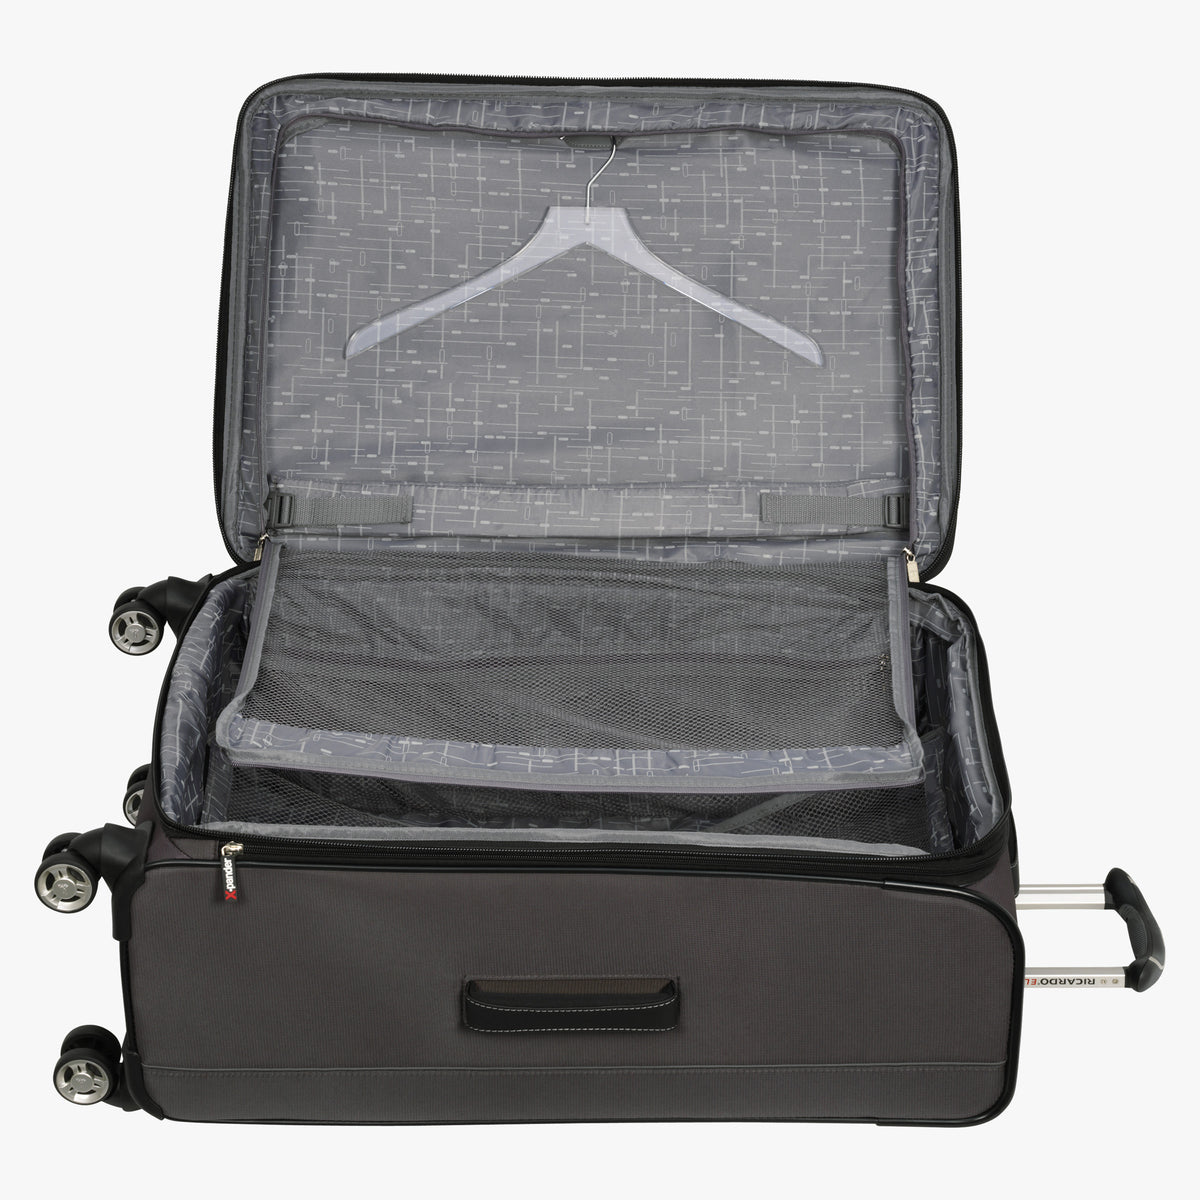 ... Large Check-In Mar Vista 28-Inch Check-In Suitcase in Graphite  Alternate ... eaa0c03ef6957